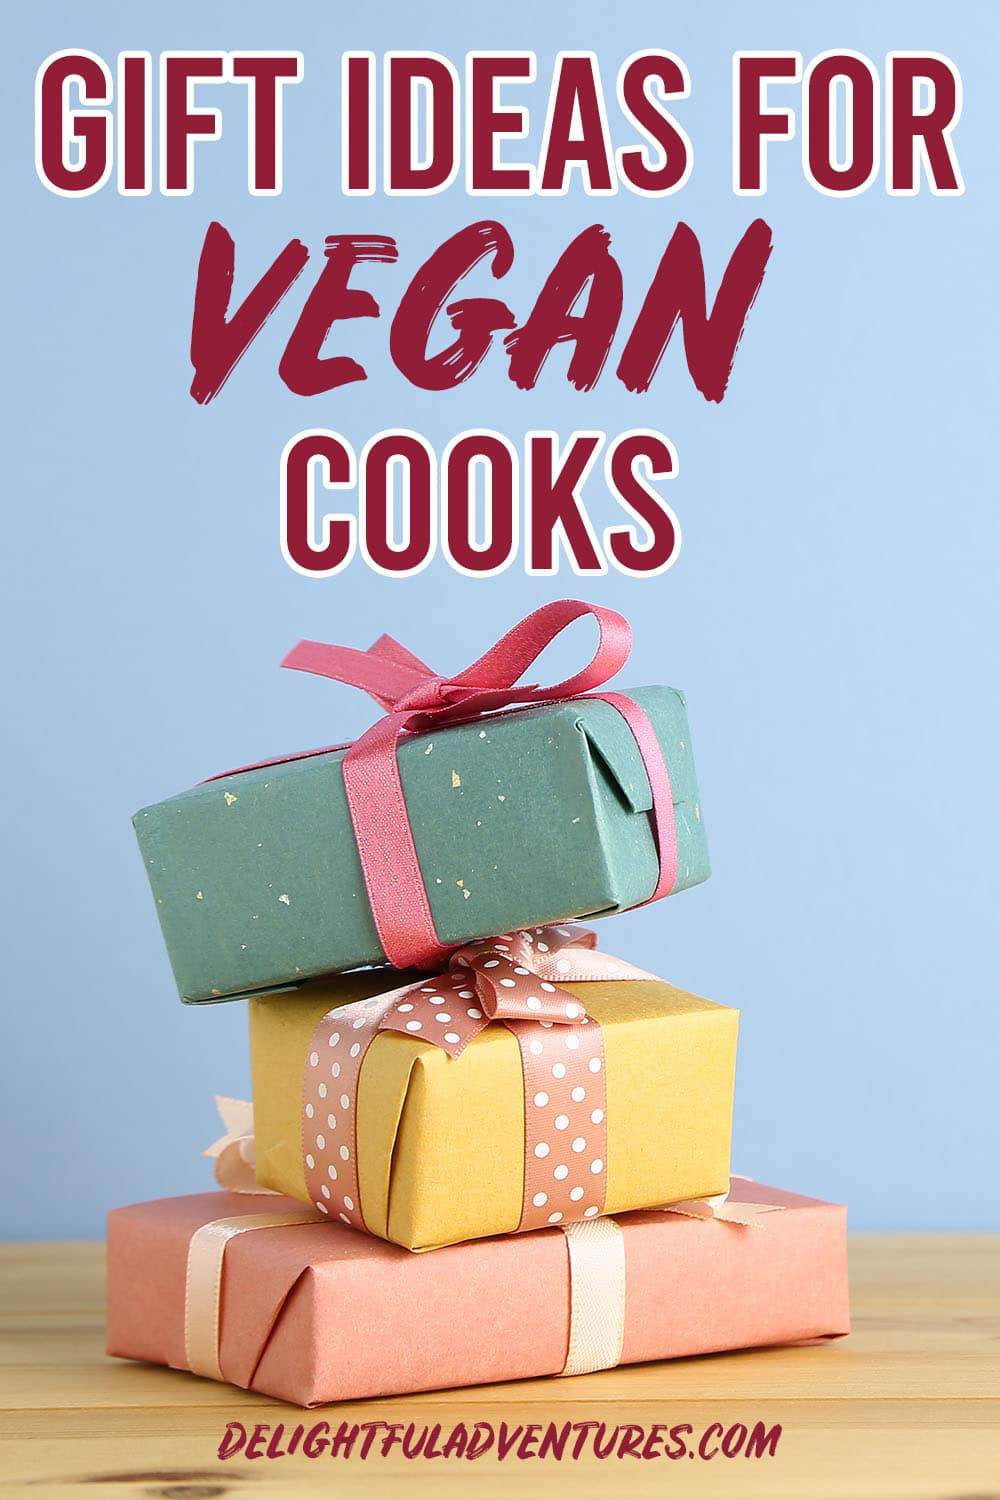 Pinterest image to promote a list of gifts for vegan cooks.